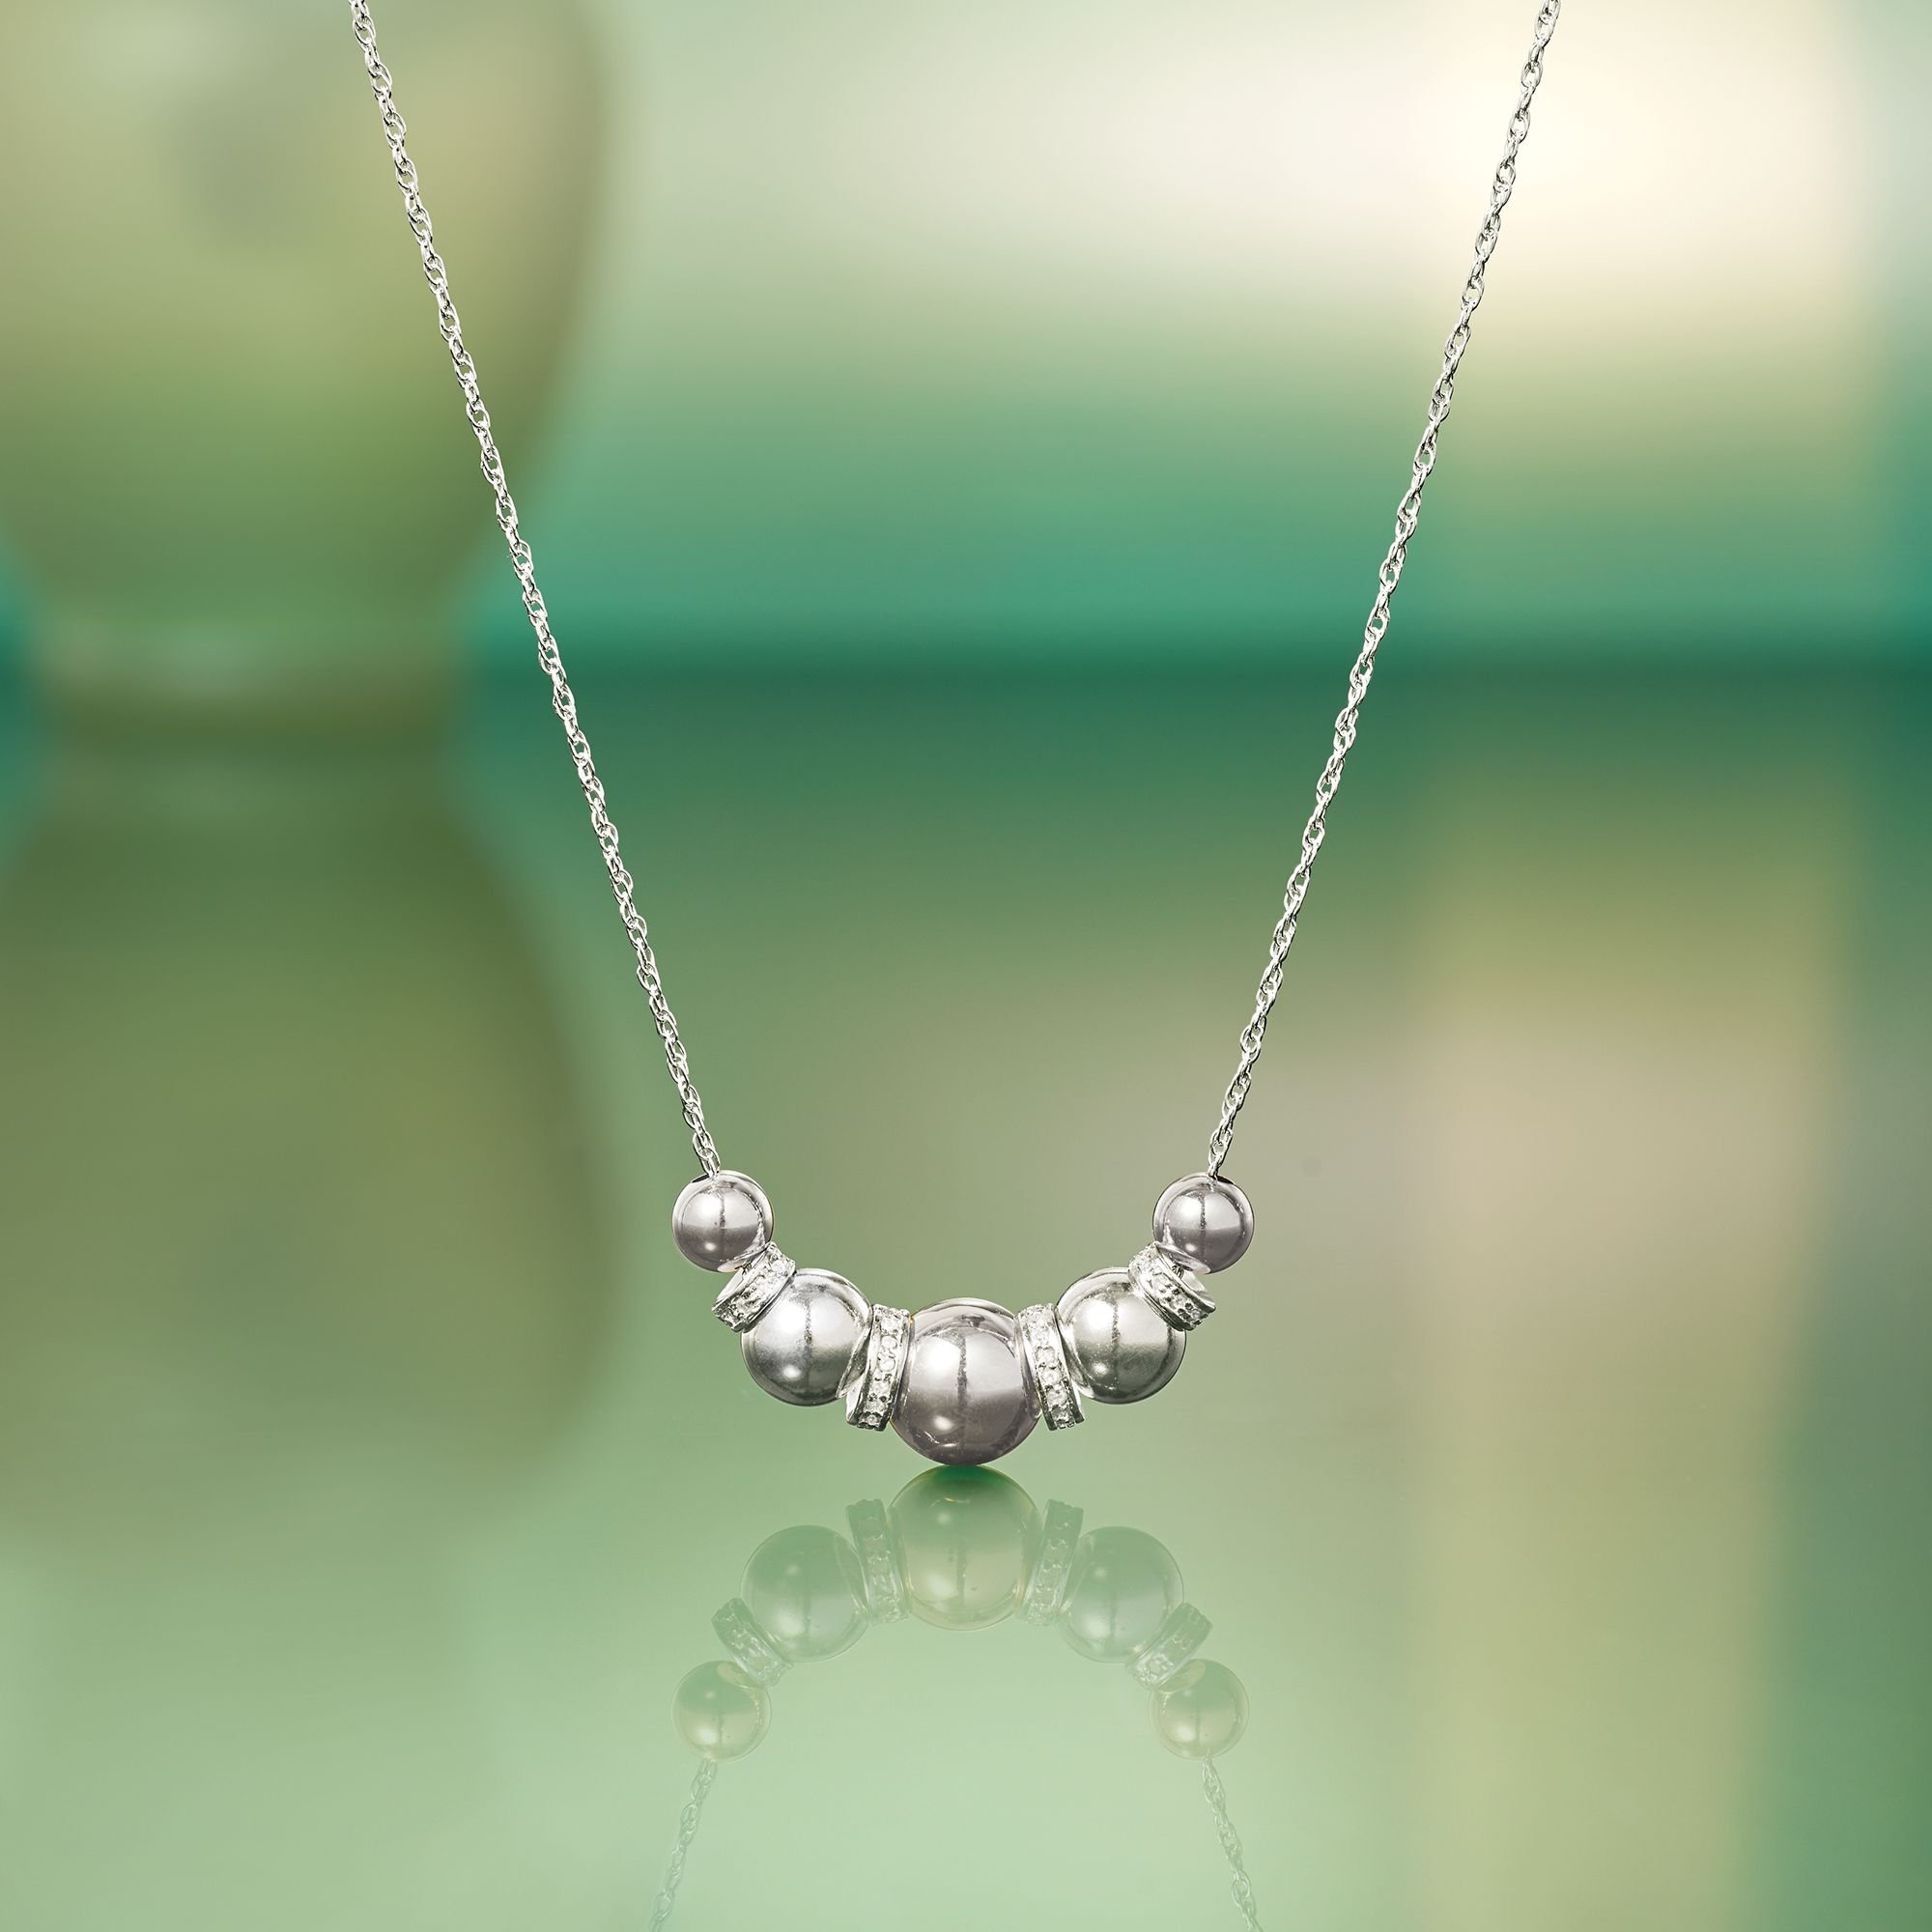 Ross-Simons 6-10mm Sterling Silver Bead Necklace With .20 ct. t.w. Diamonds by Ross-Simons (Image #6)